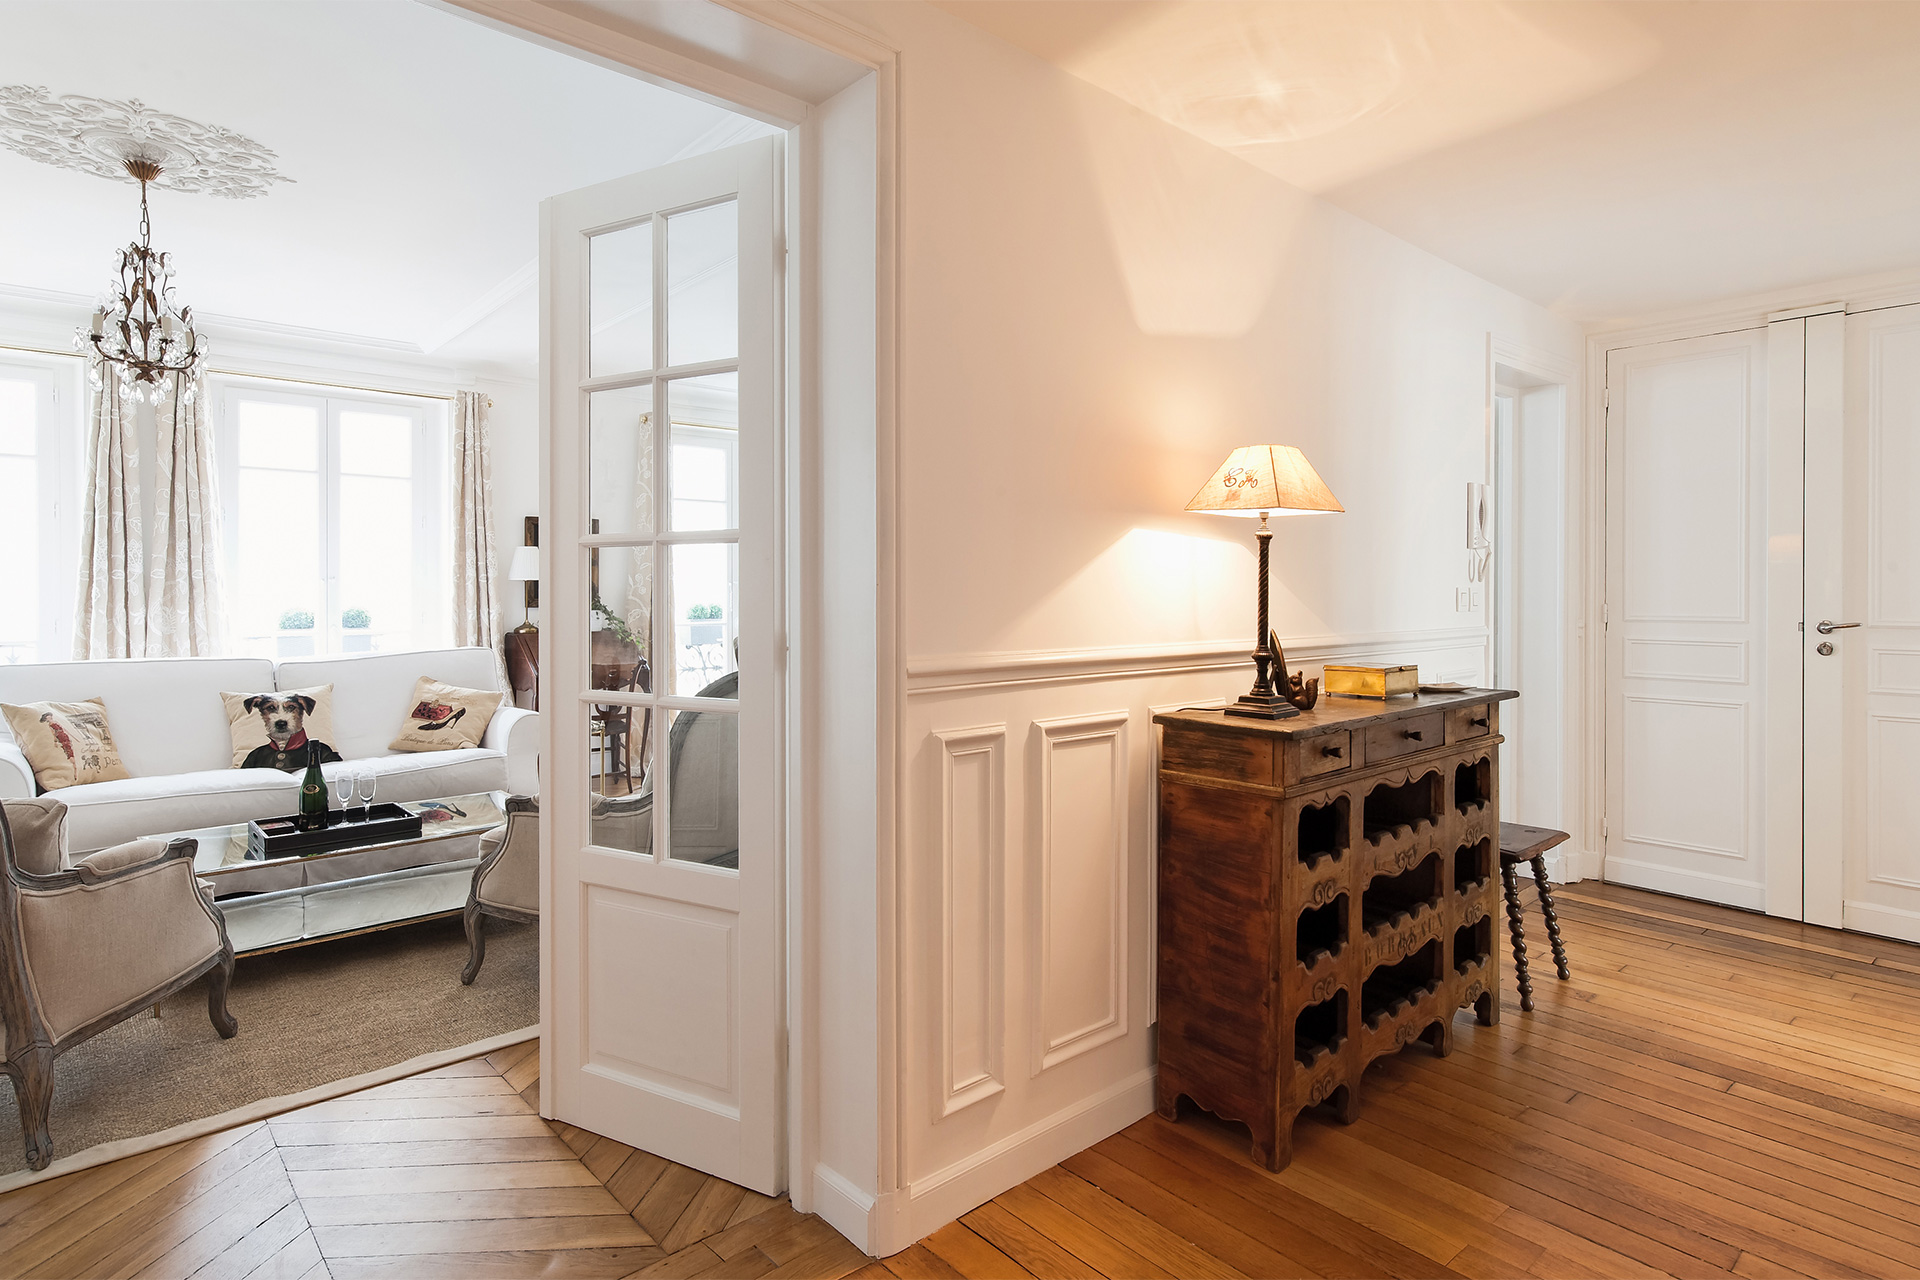 Hallway dresser in the Montagny vacation rental offered by Paris Perfect